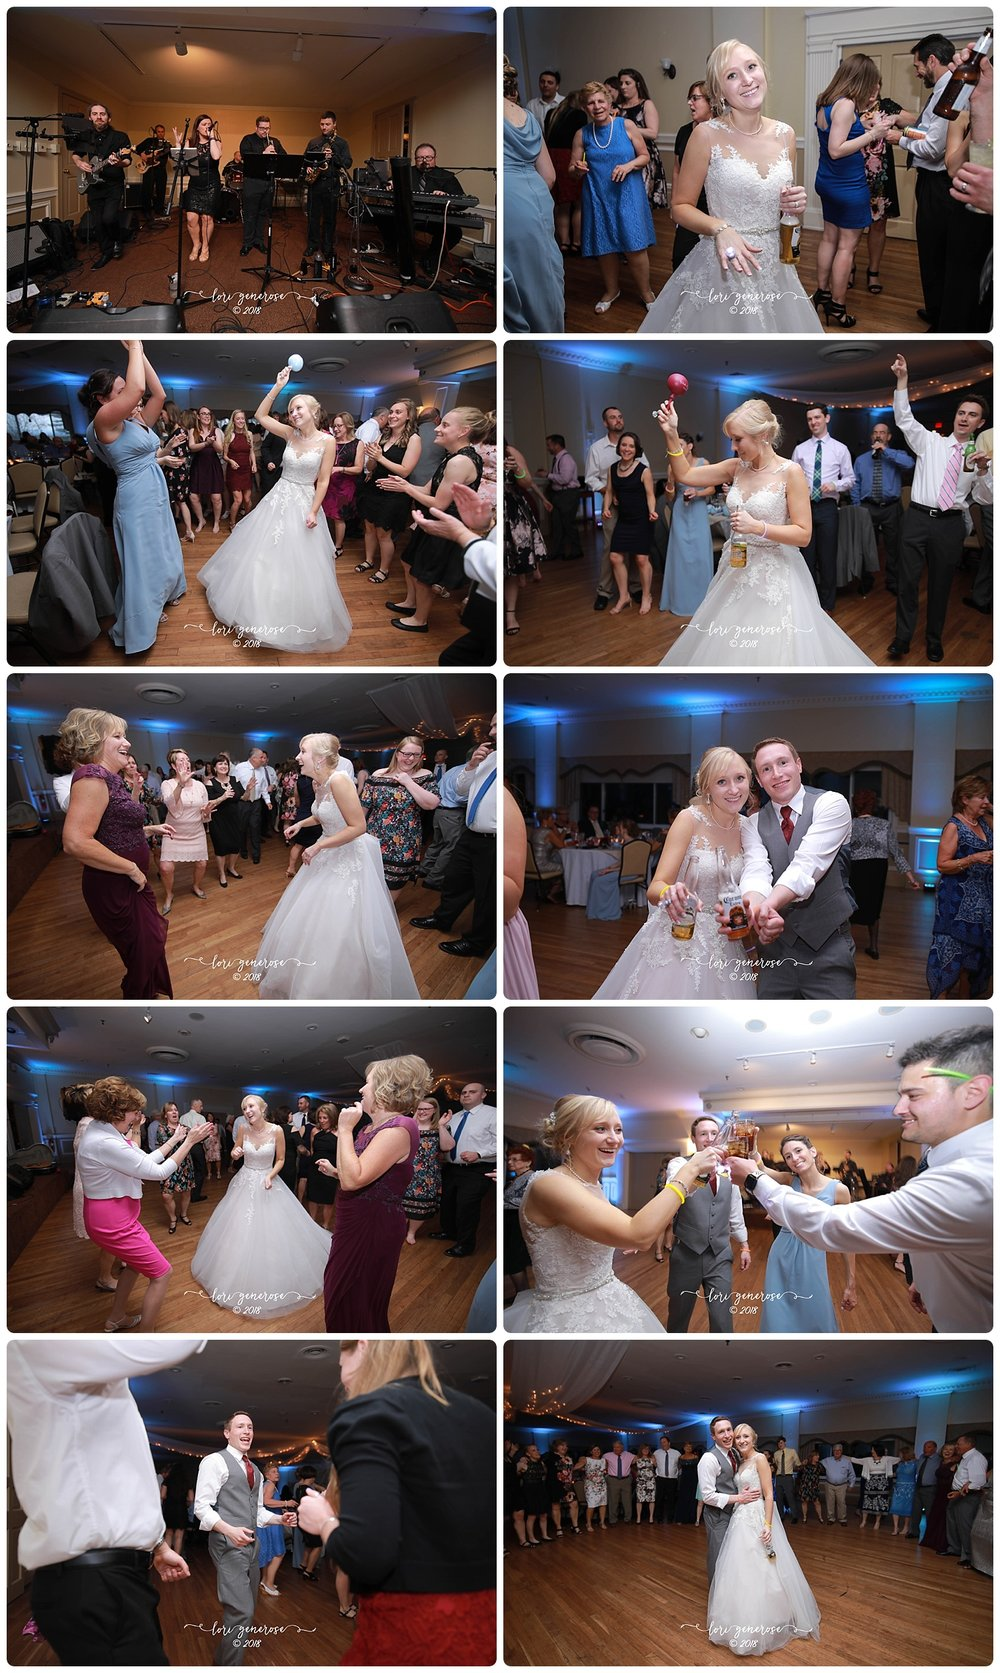 lgphotographylorigenerosetheinnatpoconomanorpaweddingvenuenewsolutionentertainmentweddingbandreceptiondancing.jpg